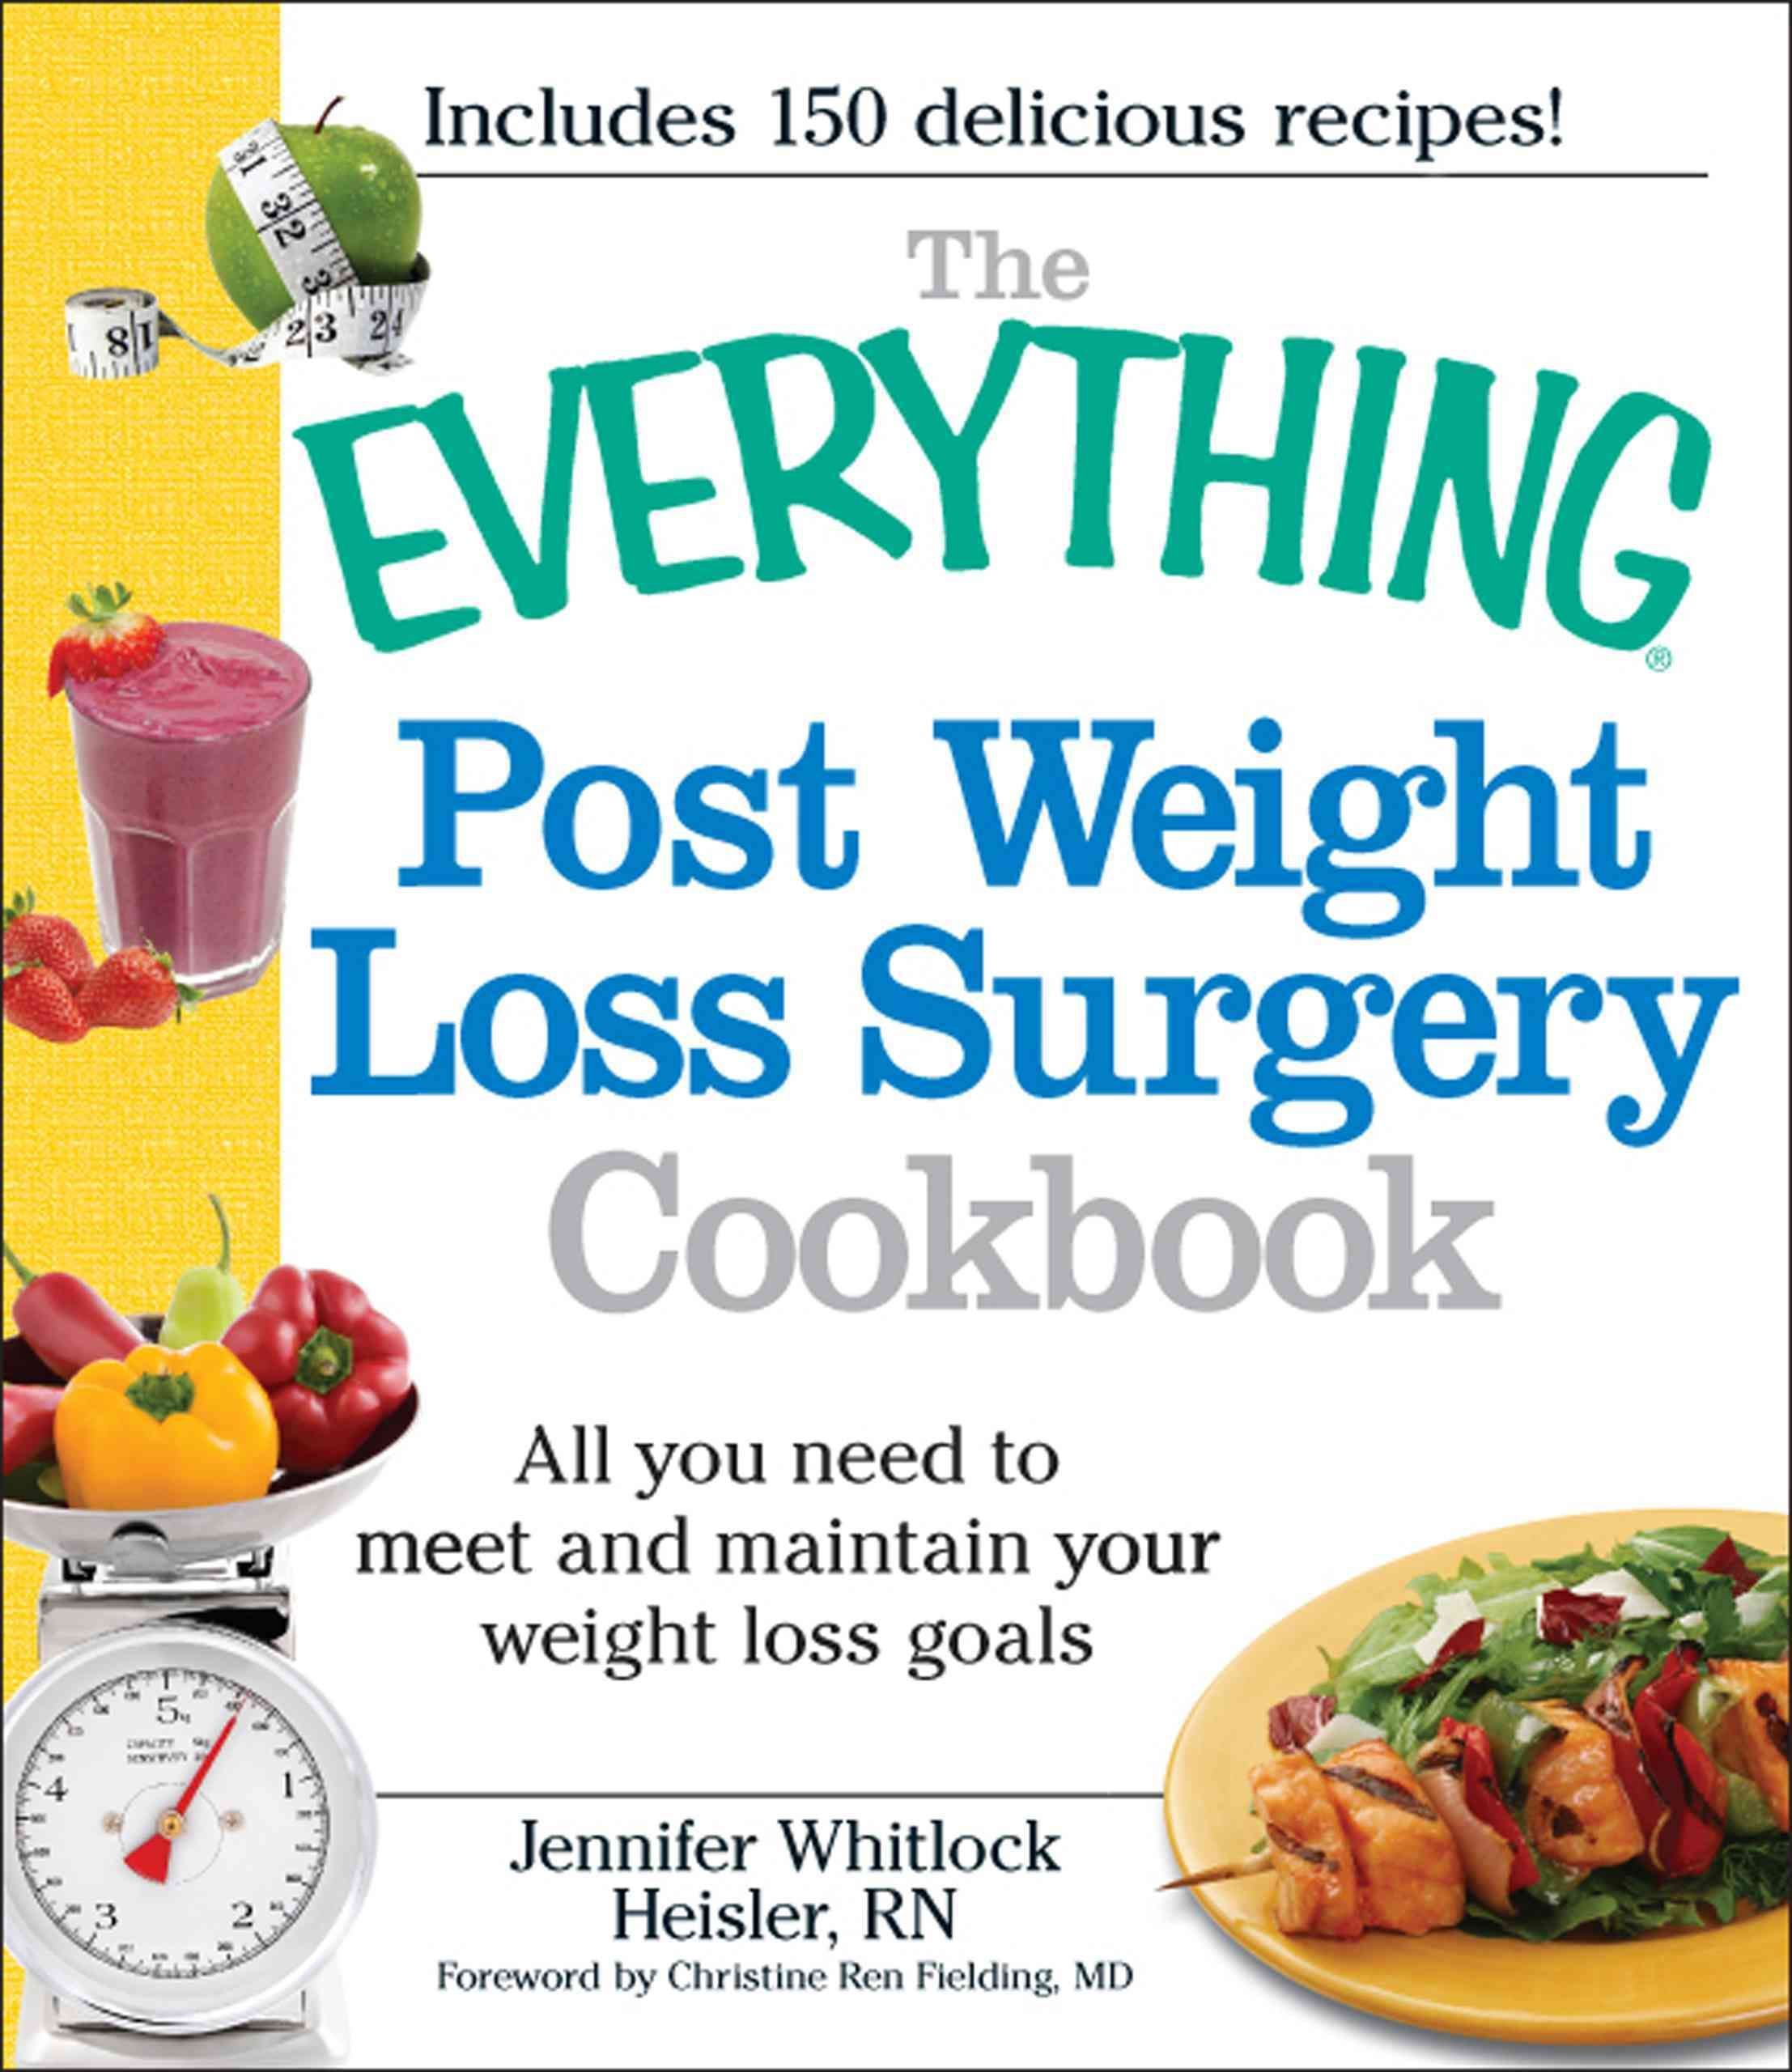 Causes weight loss plateau image 4